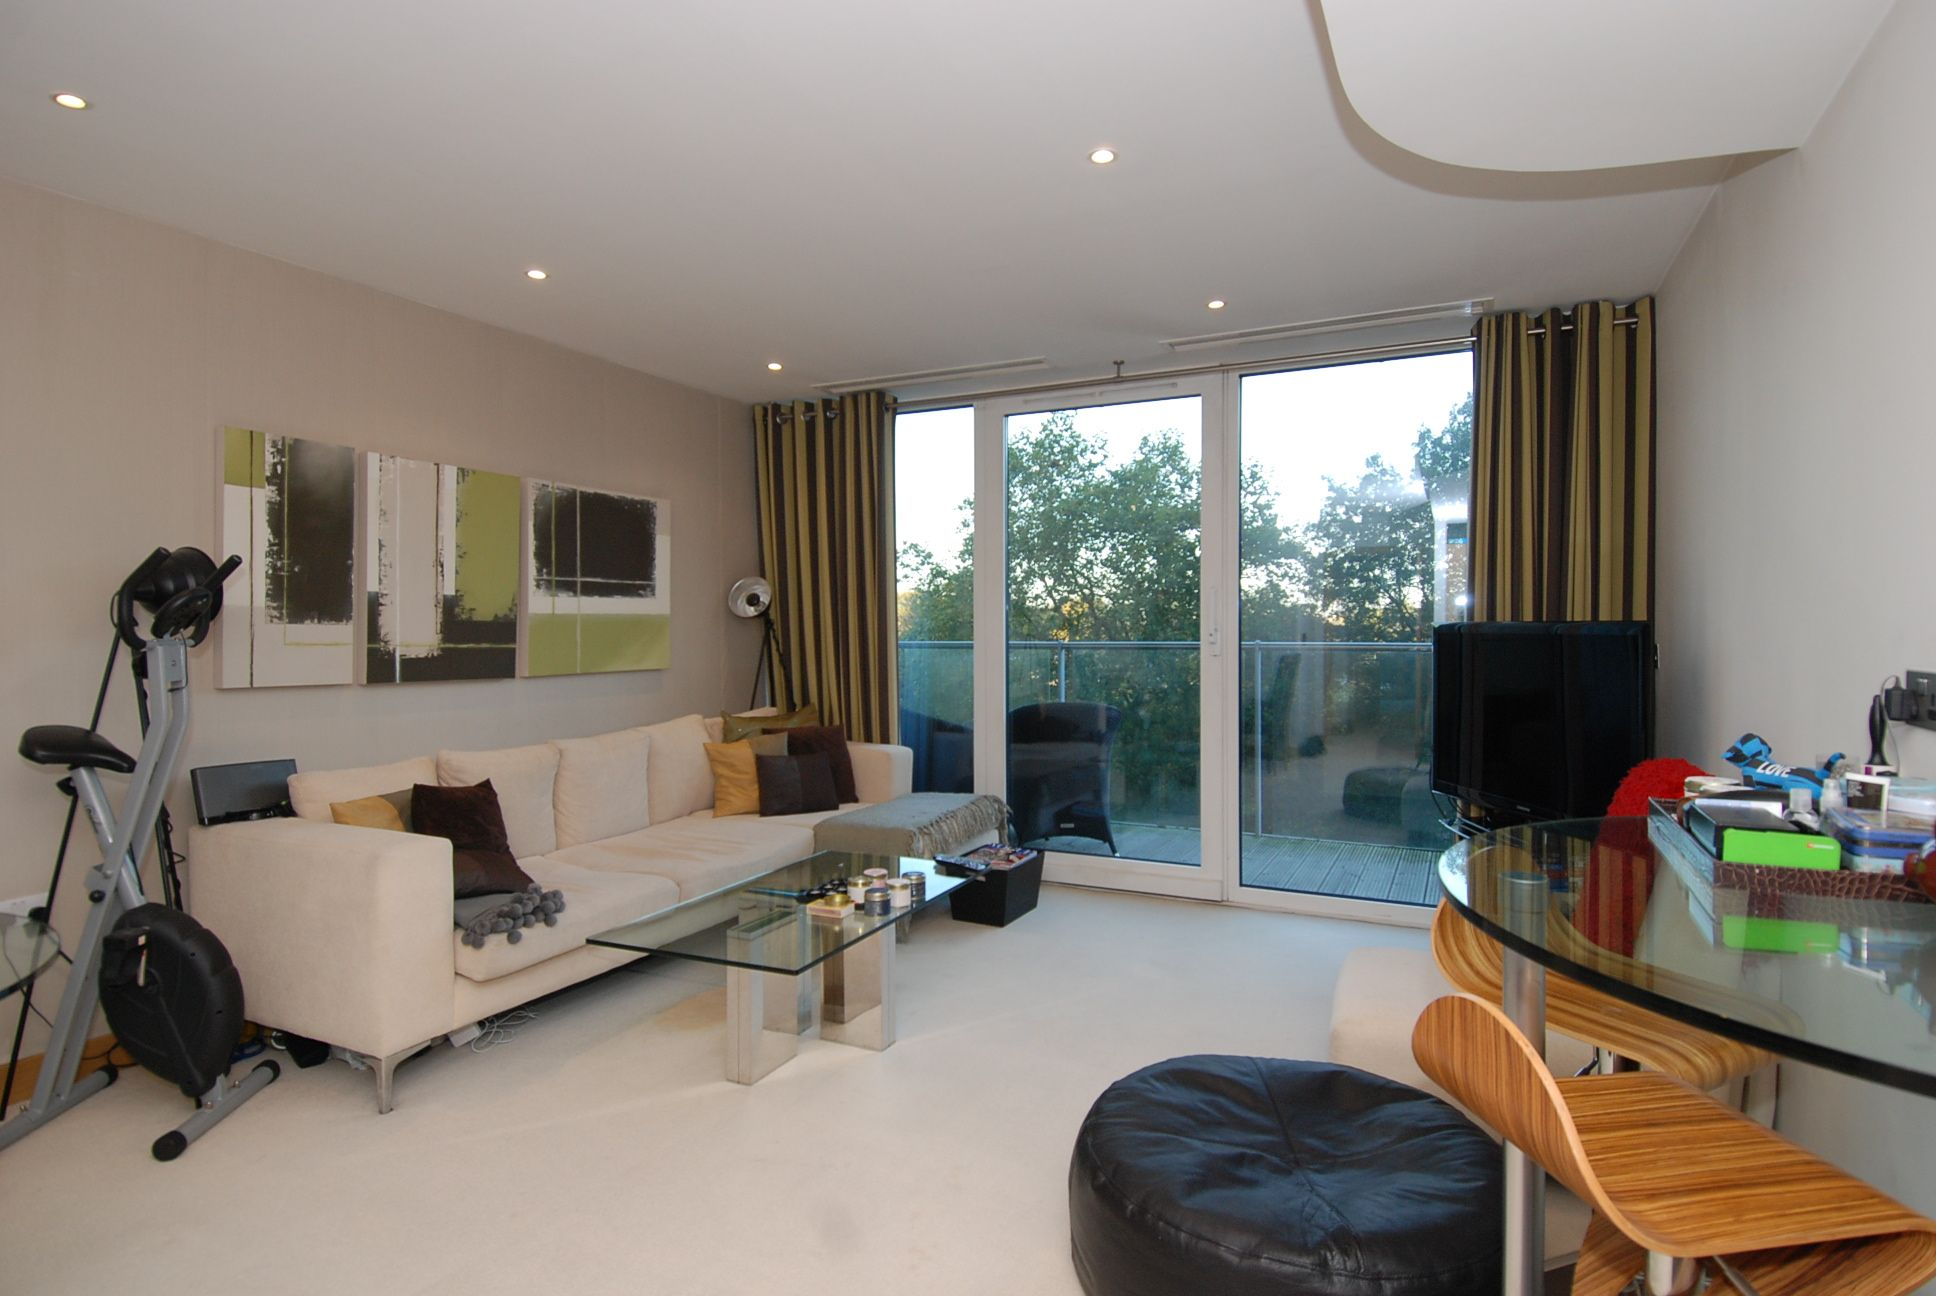 A double two bedroom flat to rent in Battersea, SW8 for £